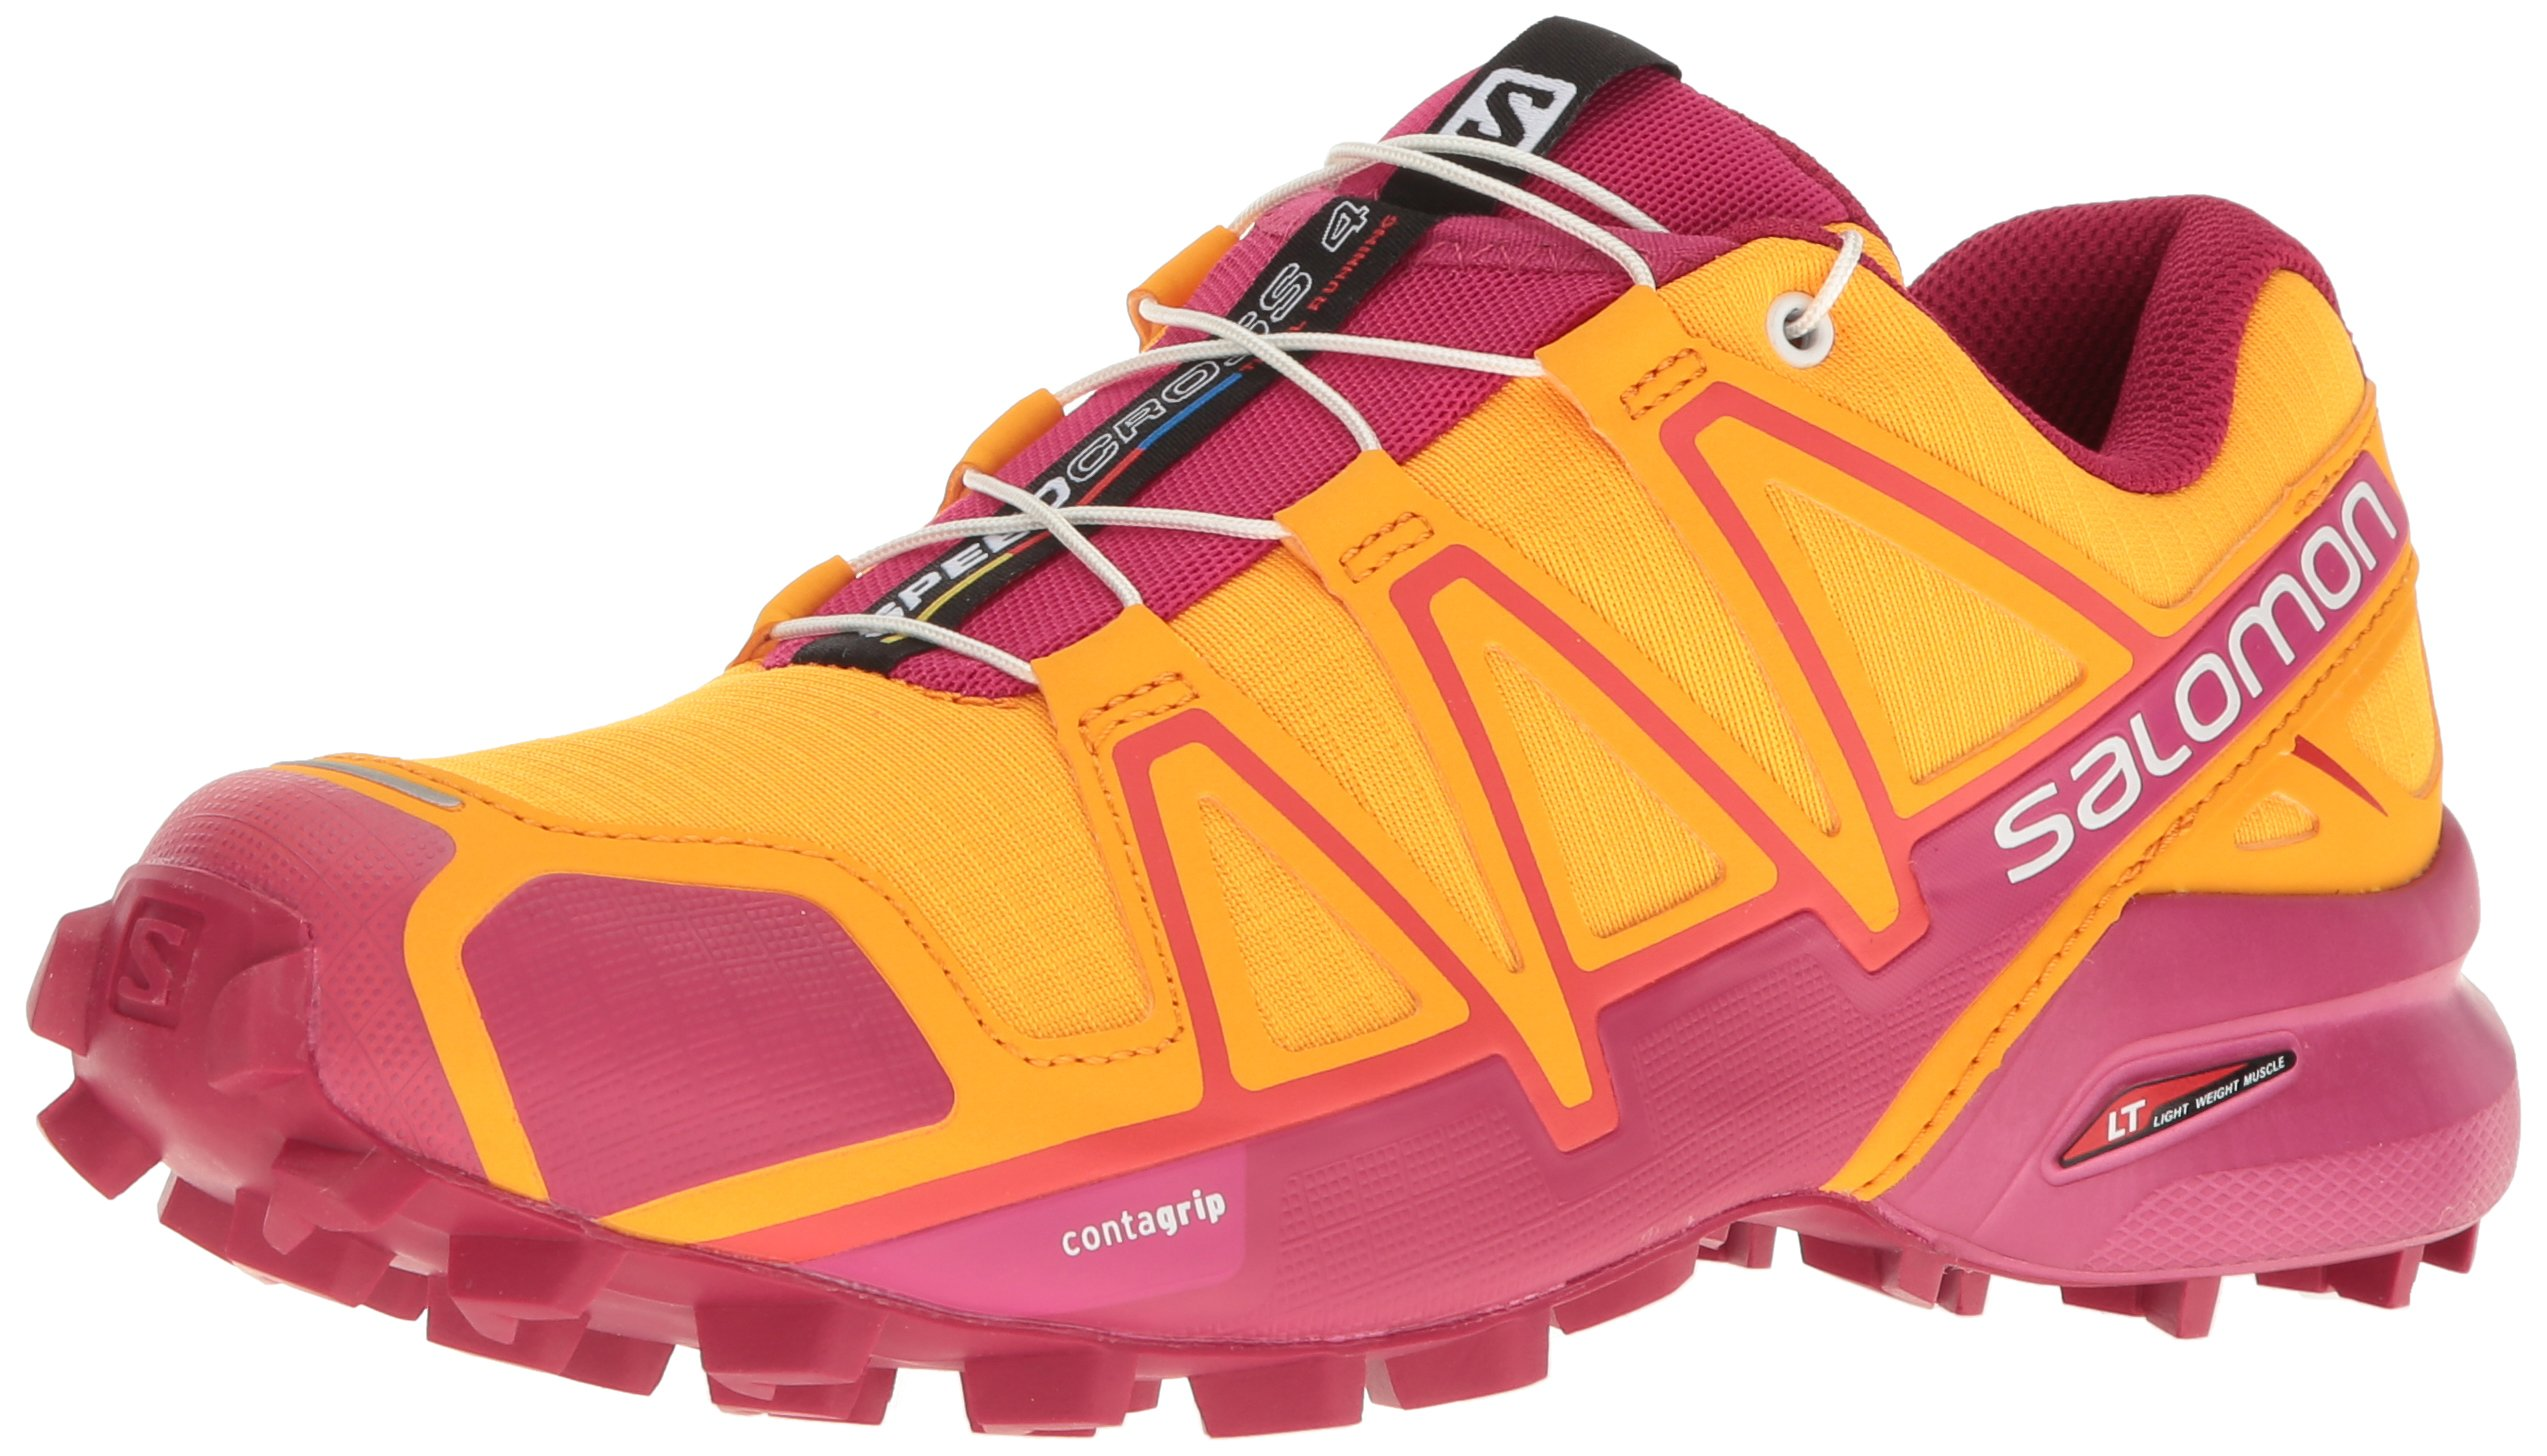 Salomon Women's Speedcross 4 W Trail Runner, Bright Marigold/Sangria/Rose Violet, 9 B(M) US